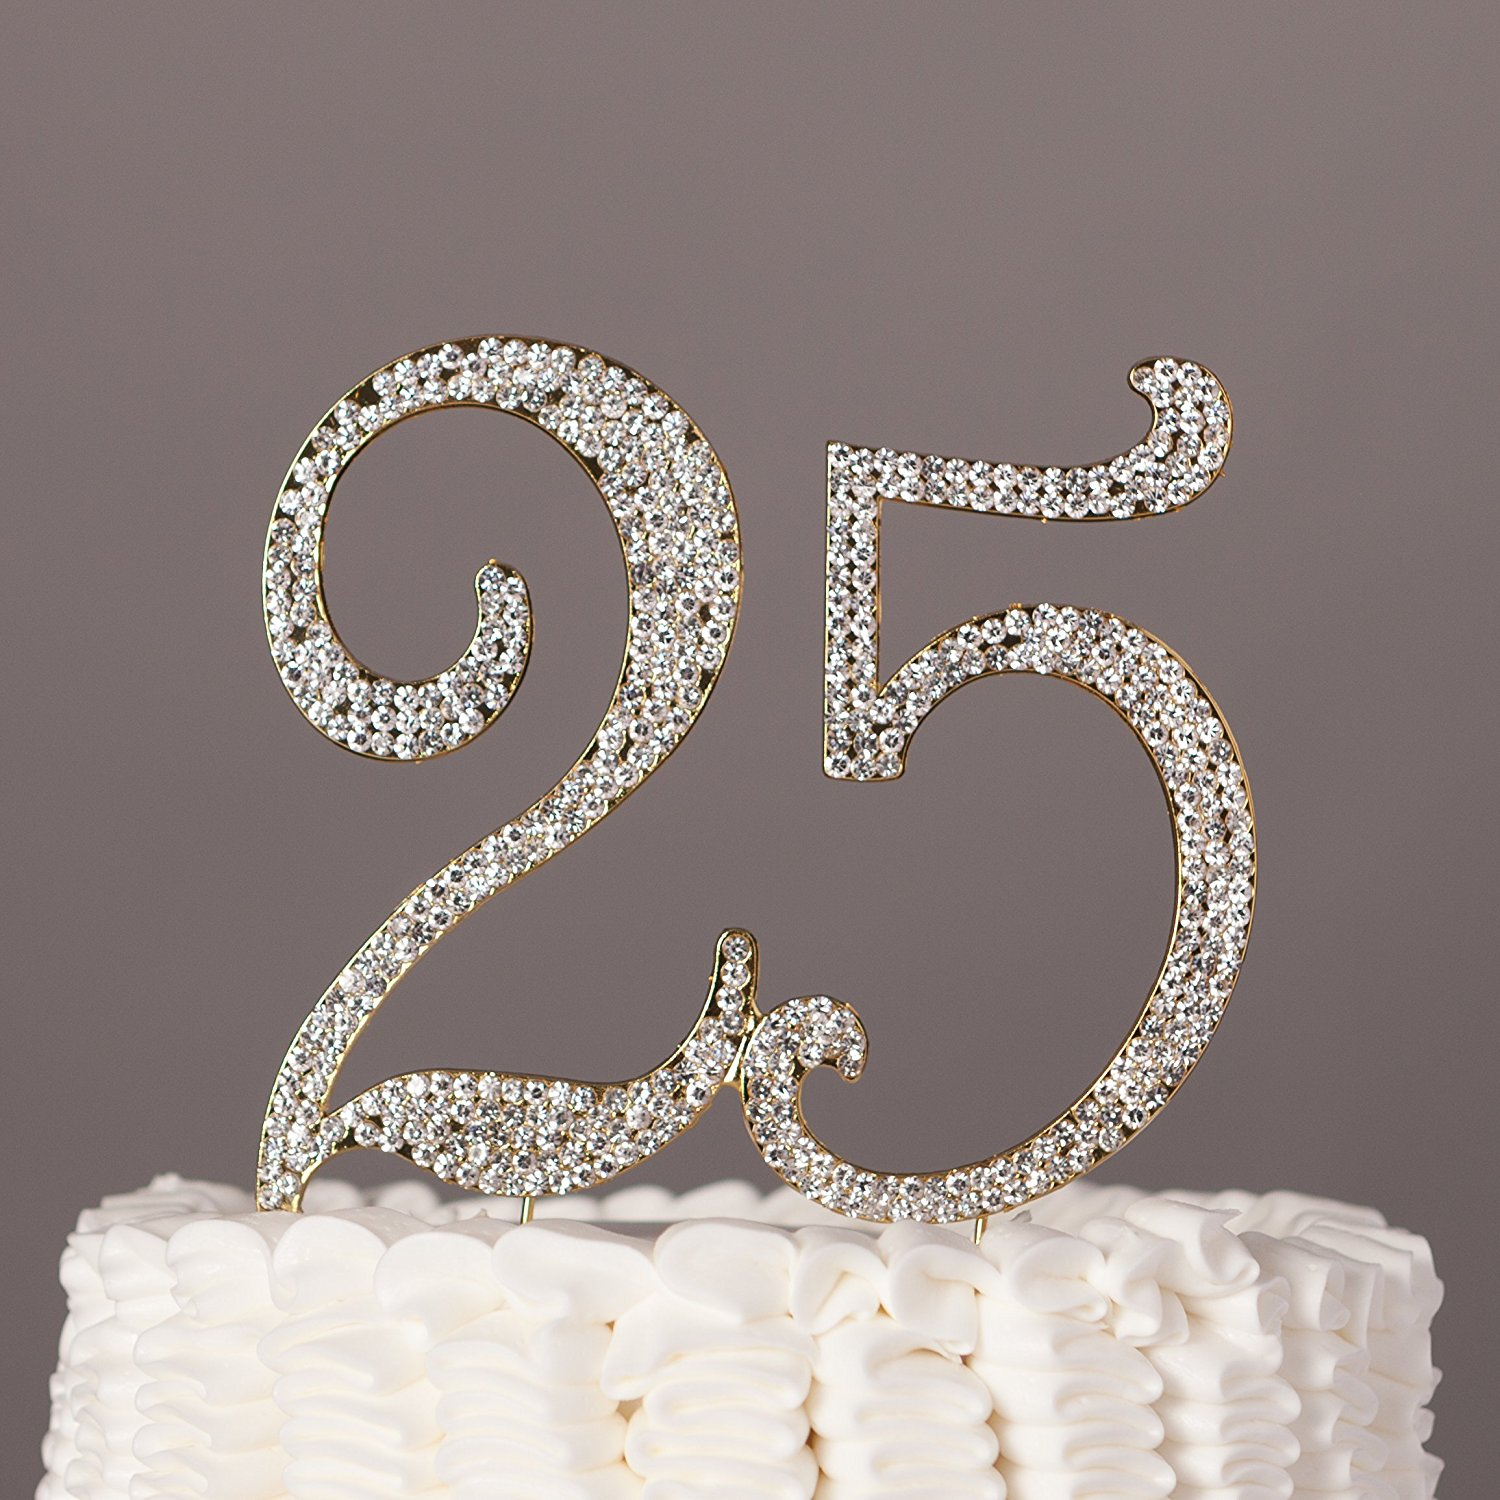 25 Cake Topper for 25th Birthday or Anniversary, Crystal Rhinestone Party Decoration Supplies (Silver)